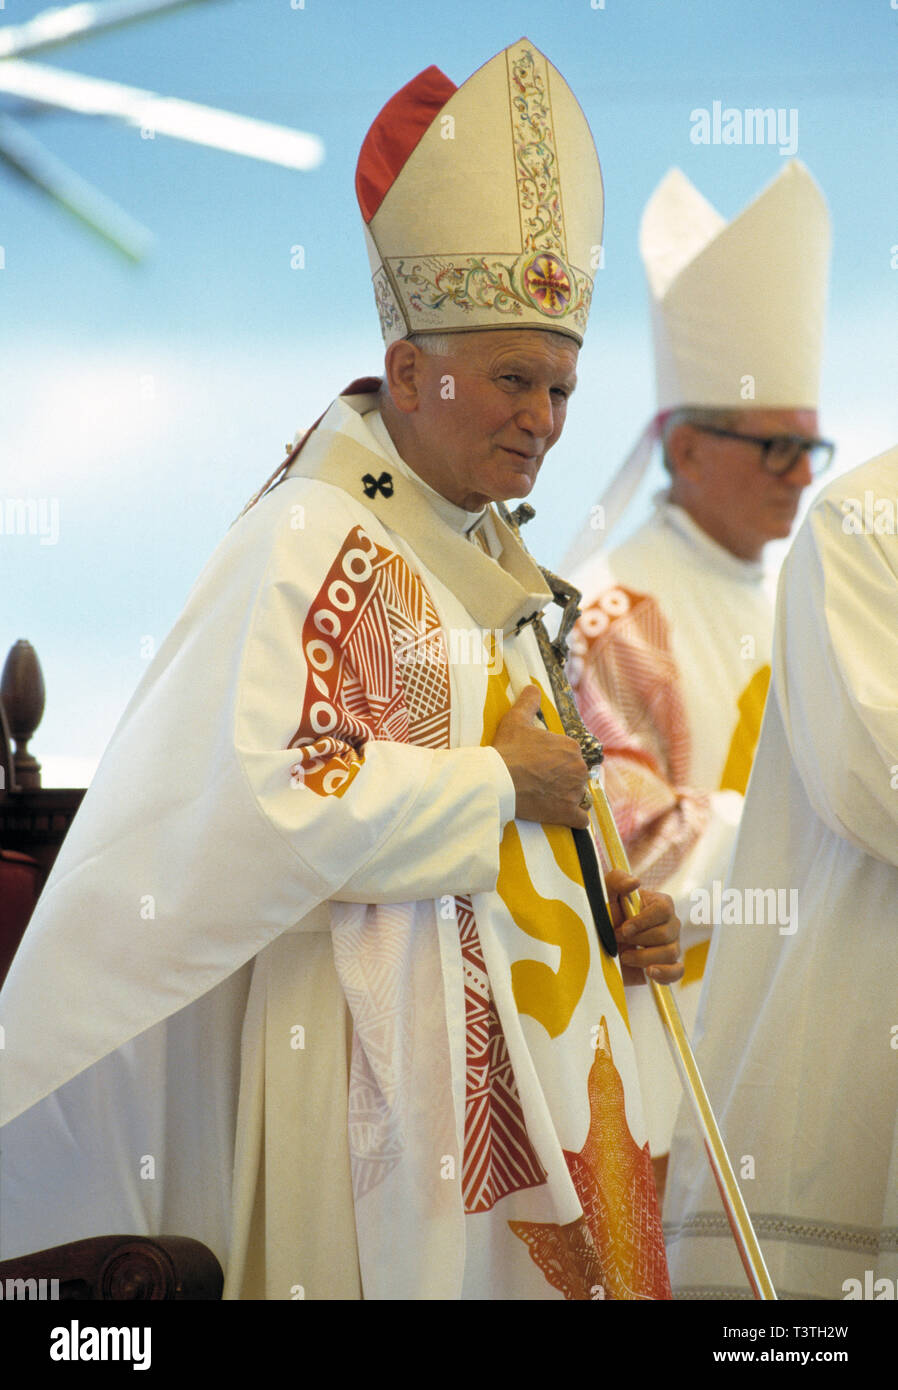 Religious leader. Pope John Paul II (1929 - 2005). Photographed during visit to Australia in 1986. - Stock Image